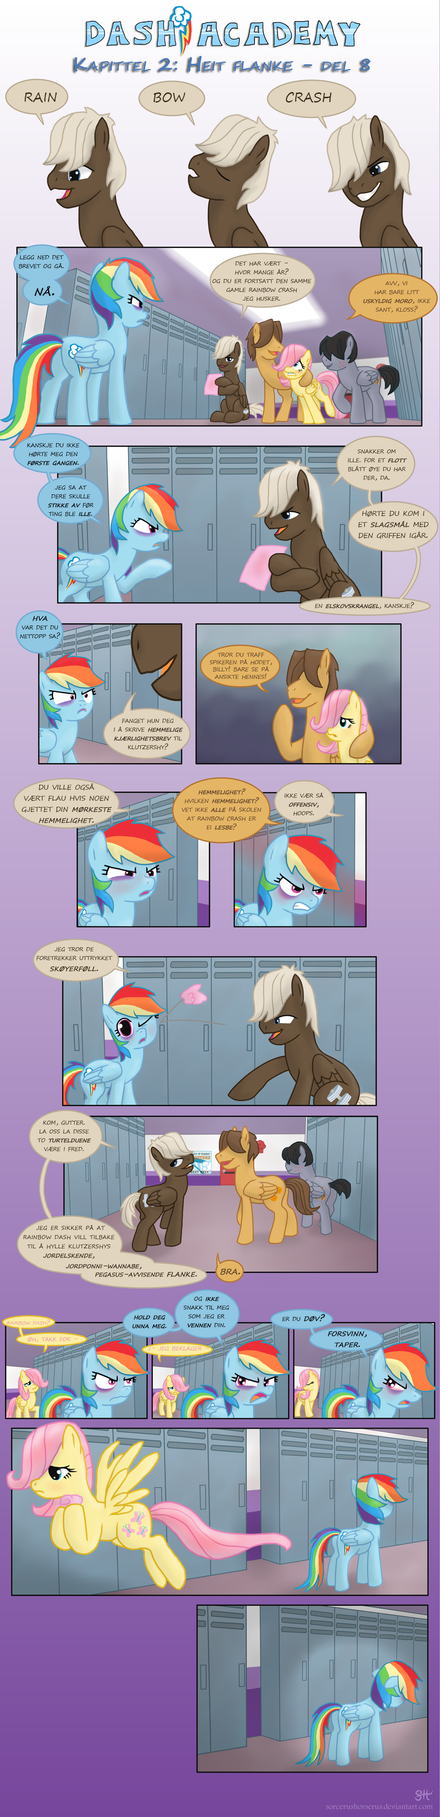 Norwegian - Dash Academy 2 Hot Flank Part 8 by TheHallOfMall